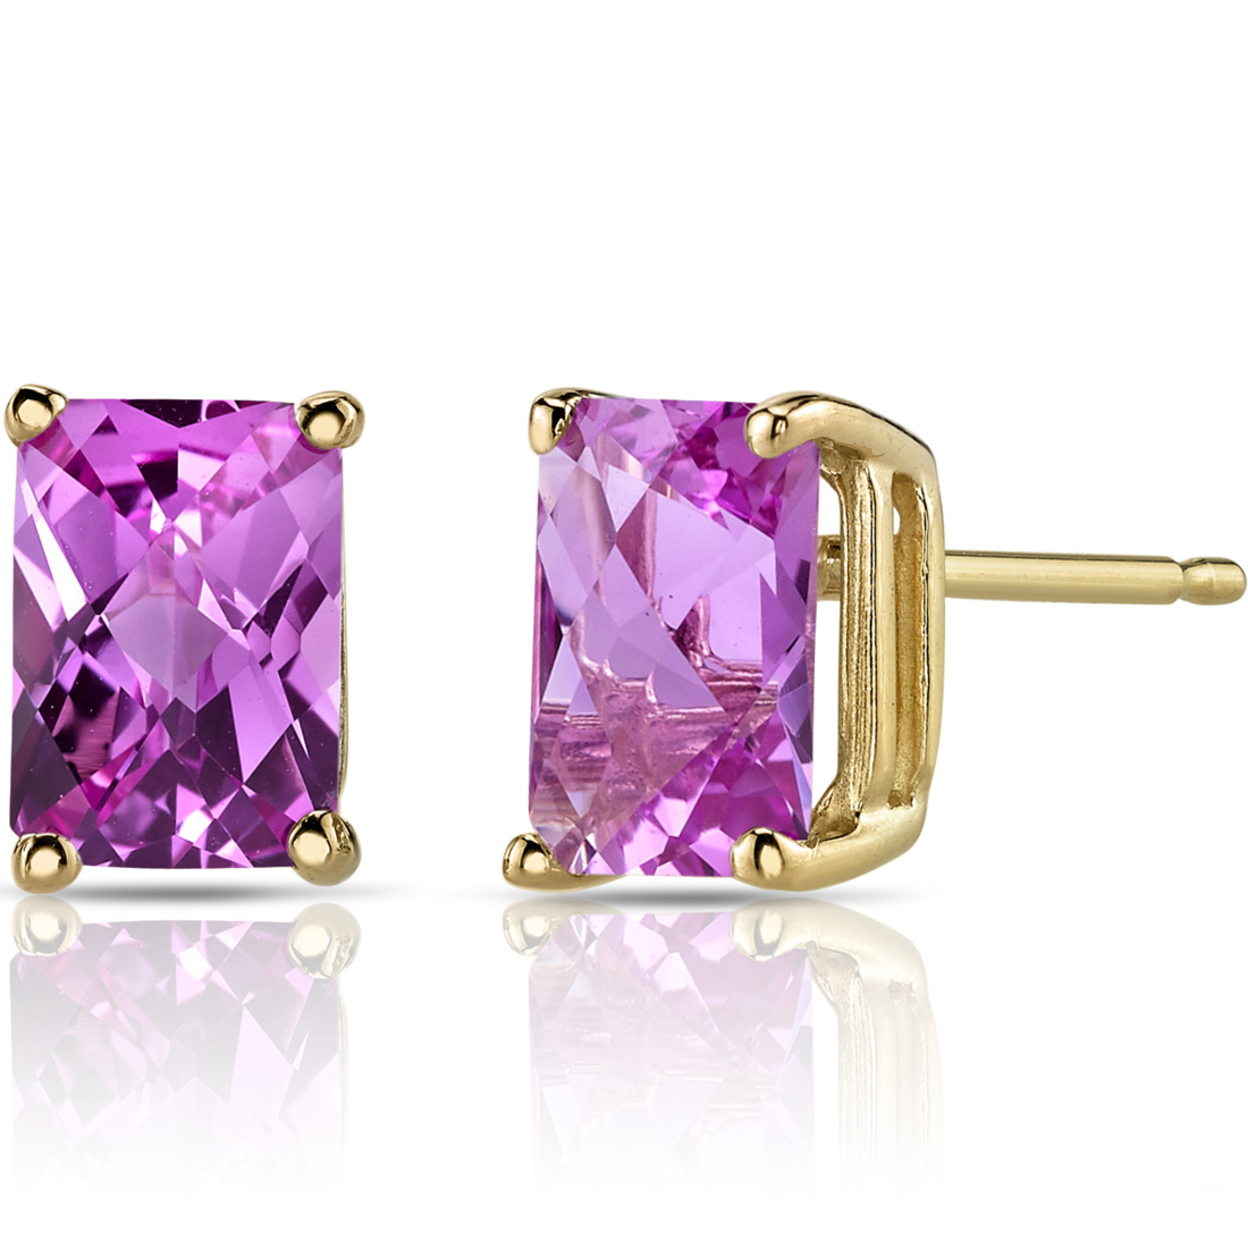 Oravo 14k Yellow Gold 2 1/2ct Tgw Created Pink Sapphire Radiant-cut Stud Earrings